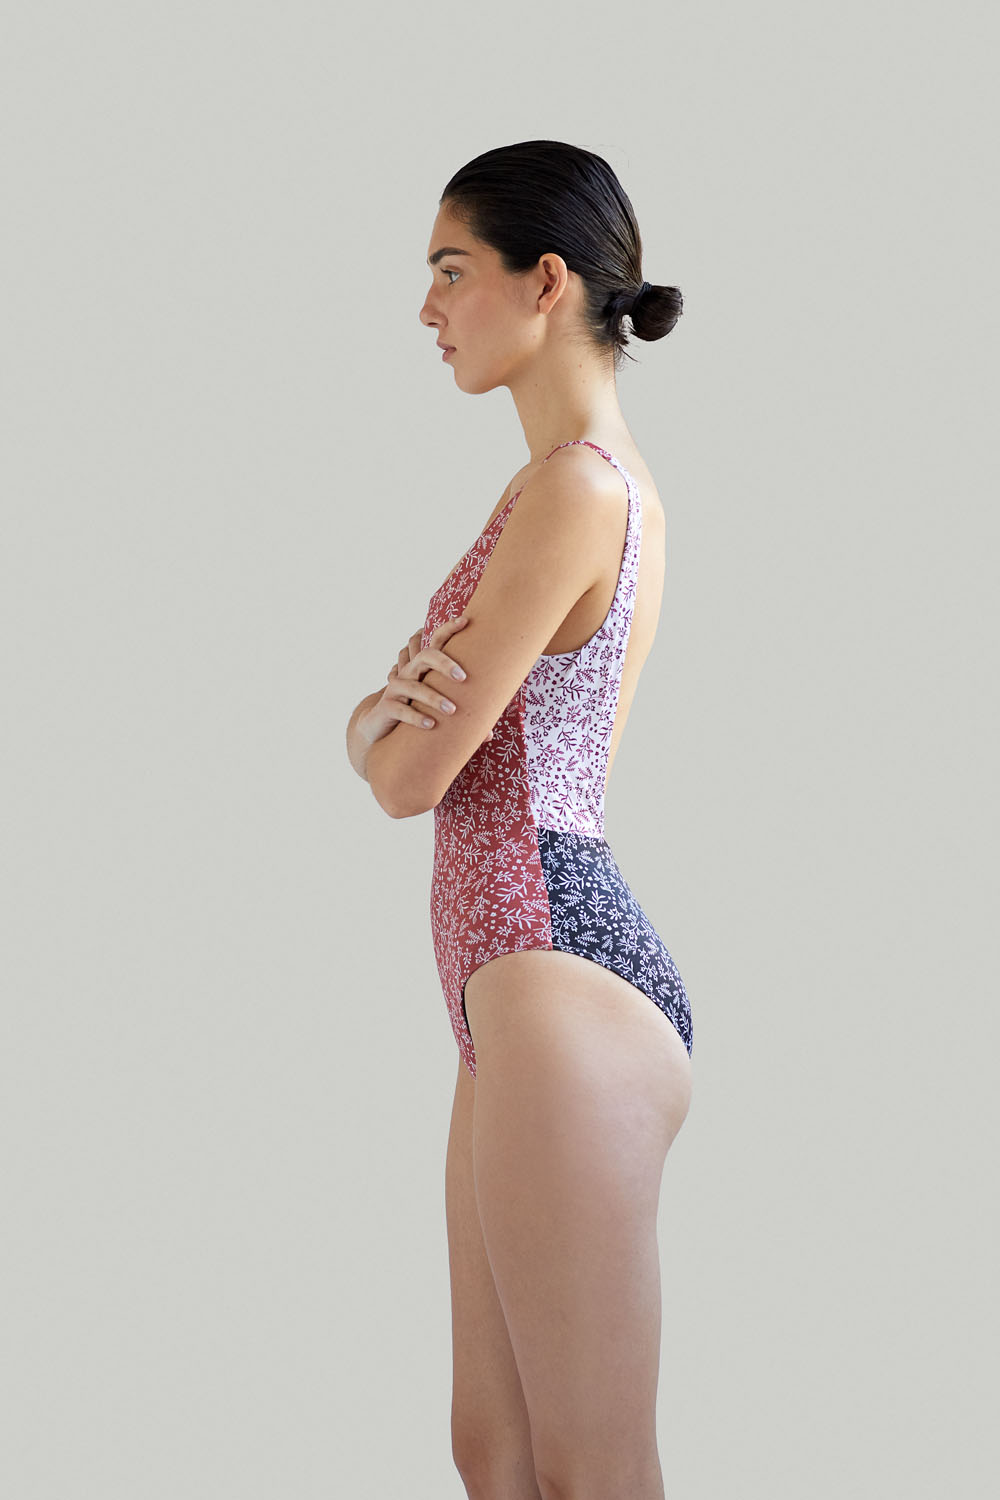 Sustainable Luxury Swimwear / Ropa de baño sostenible, eco swimsuit / bañador ecológico. Del Carmen onepiece in anemone, by NOW_THEN